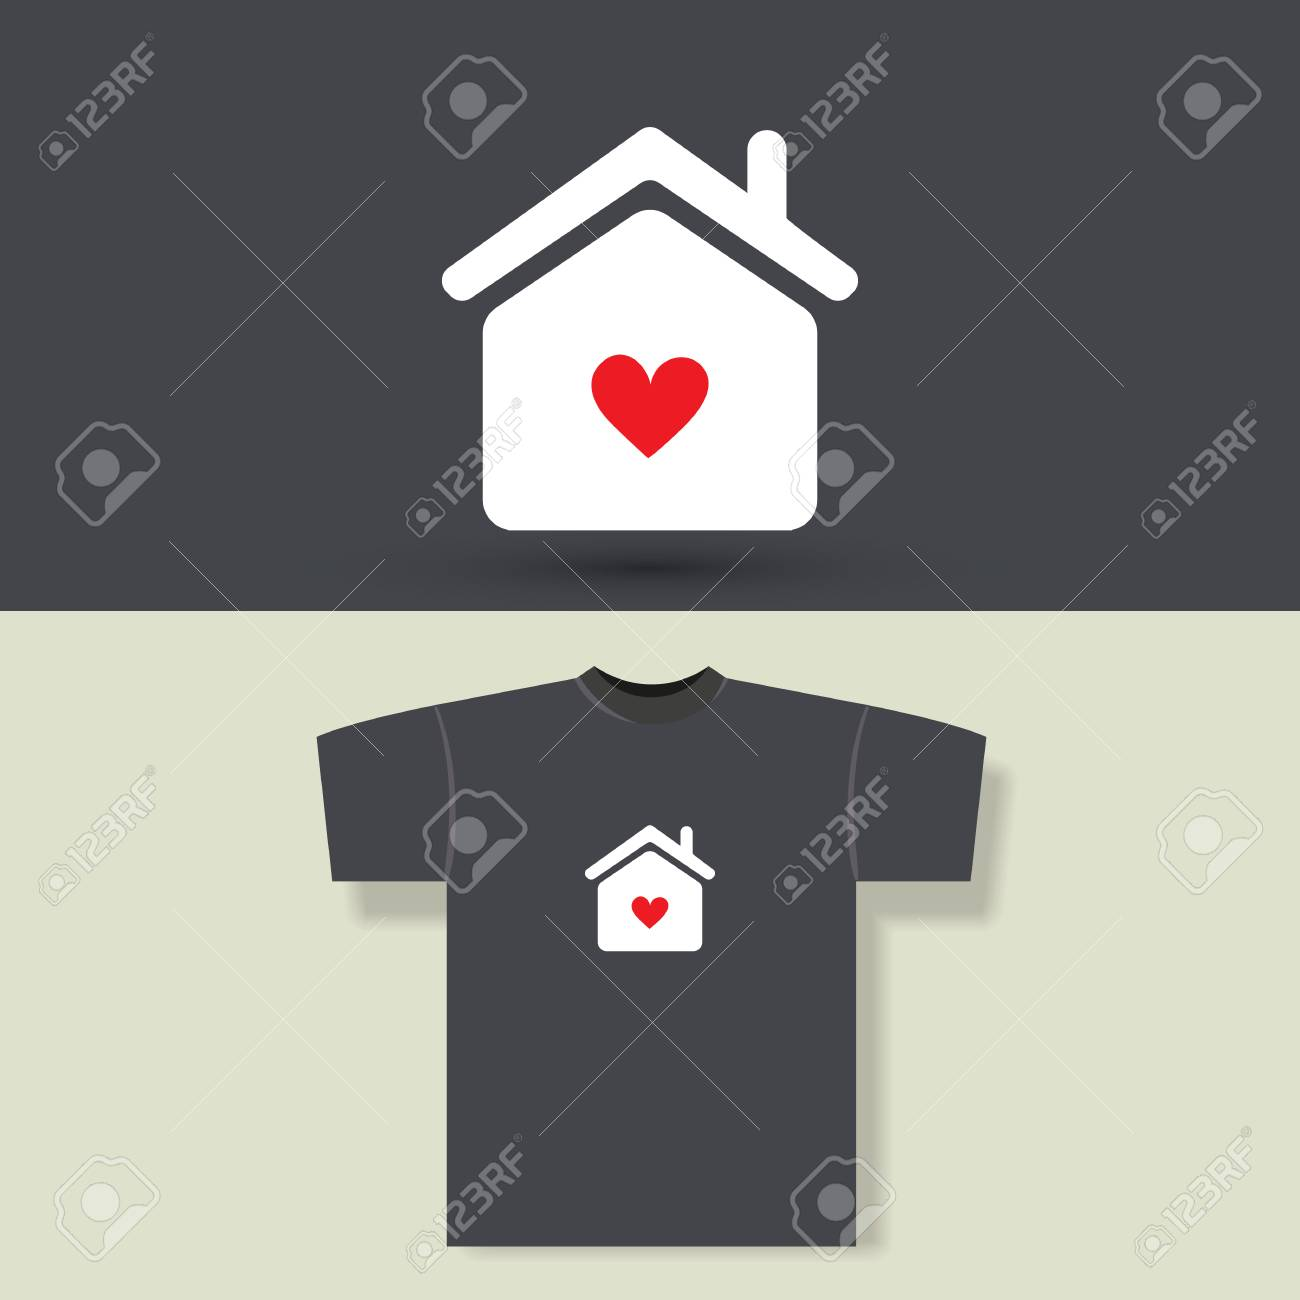 How To Print Design On T Shirt At Home Summer Cook